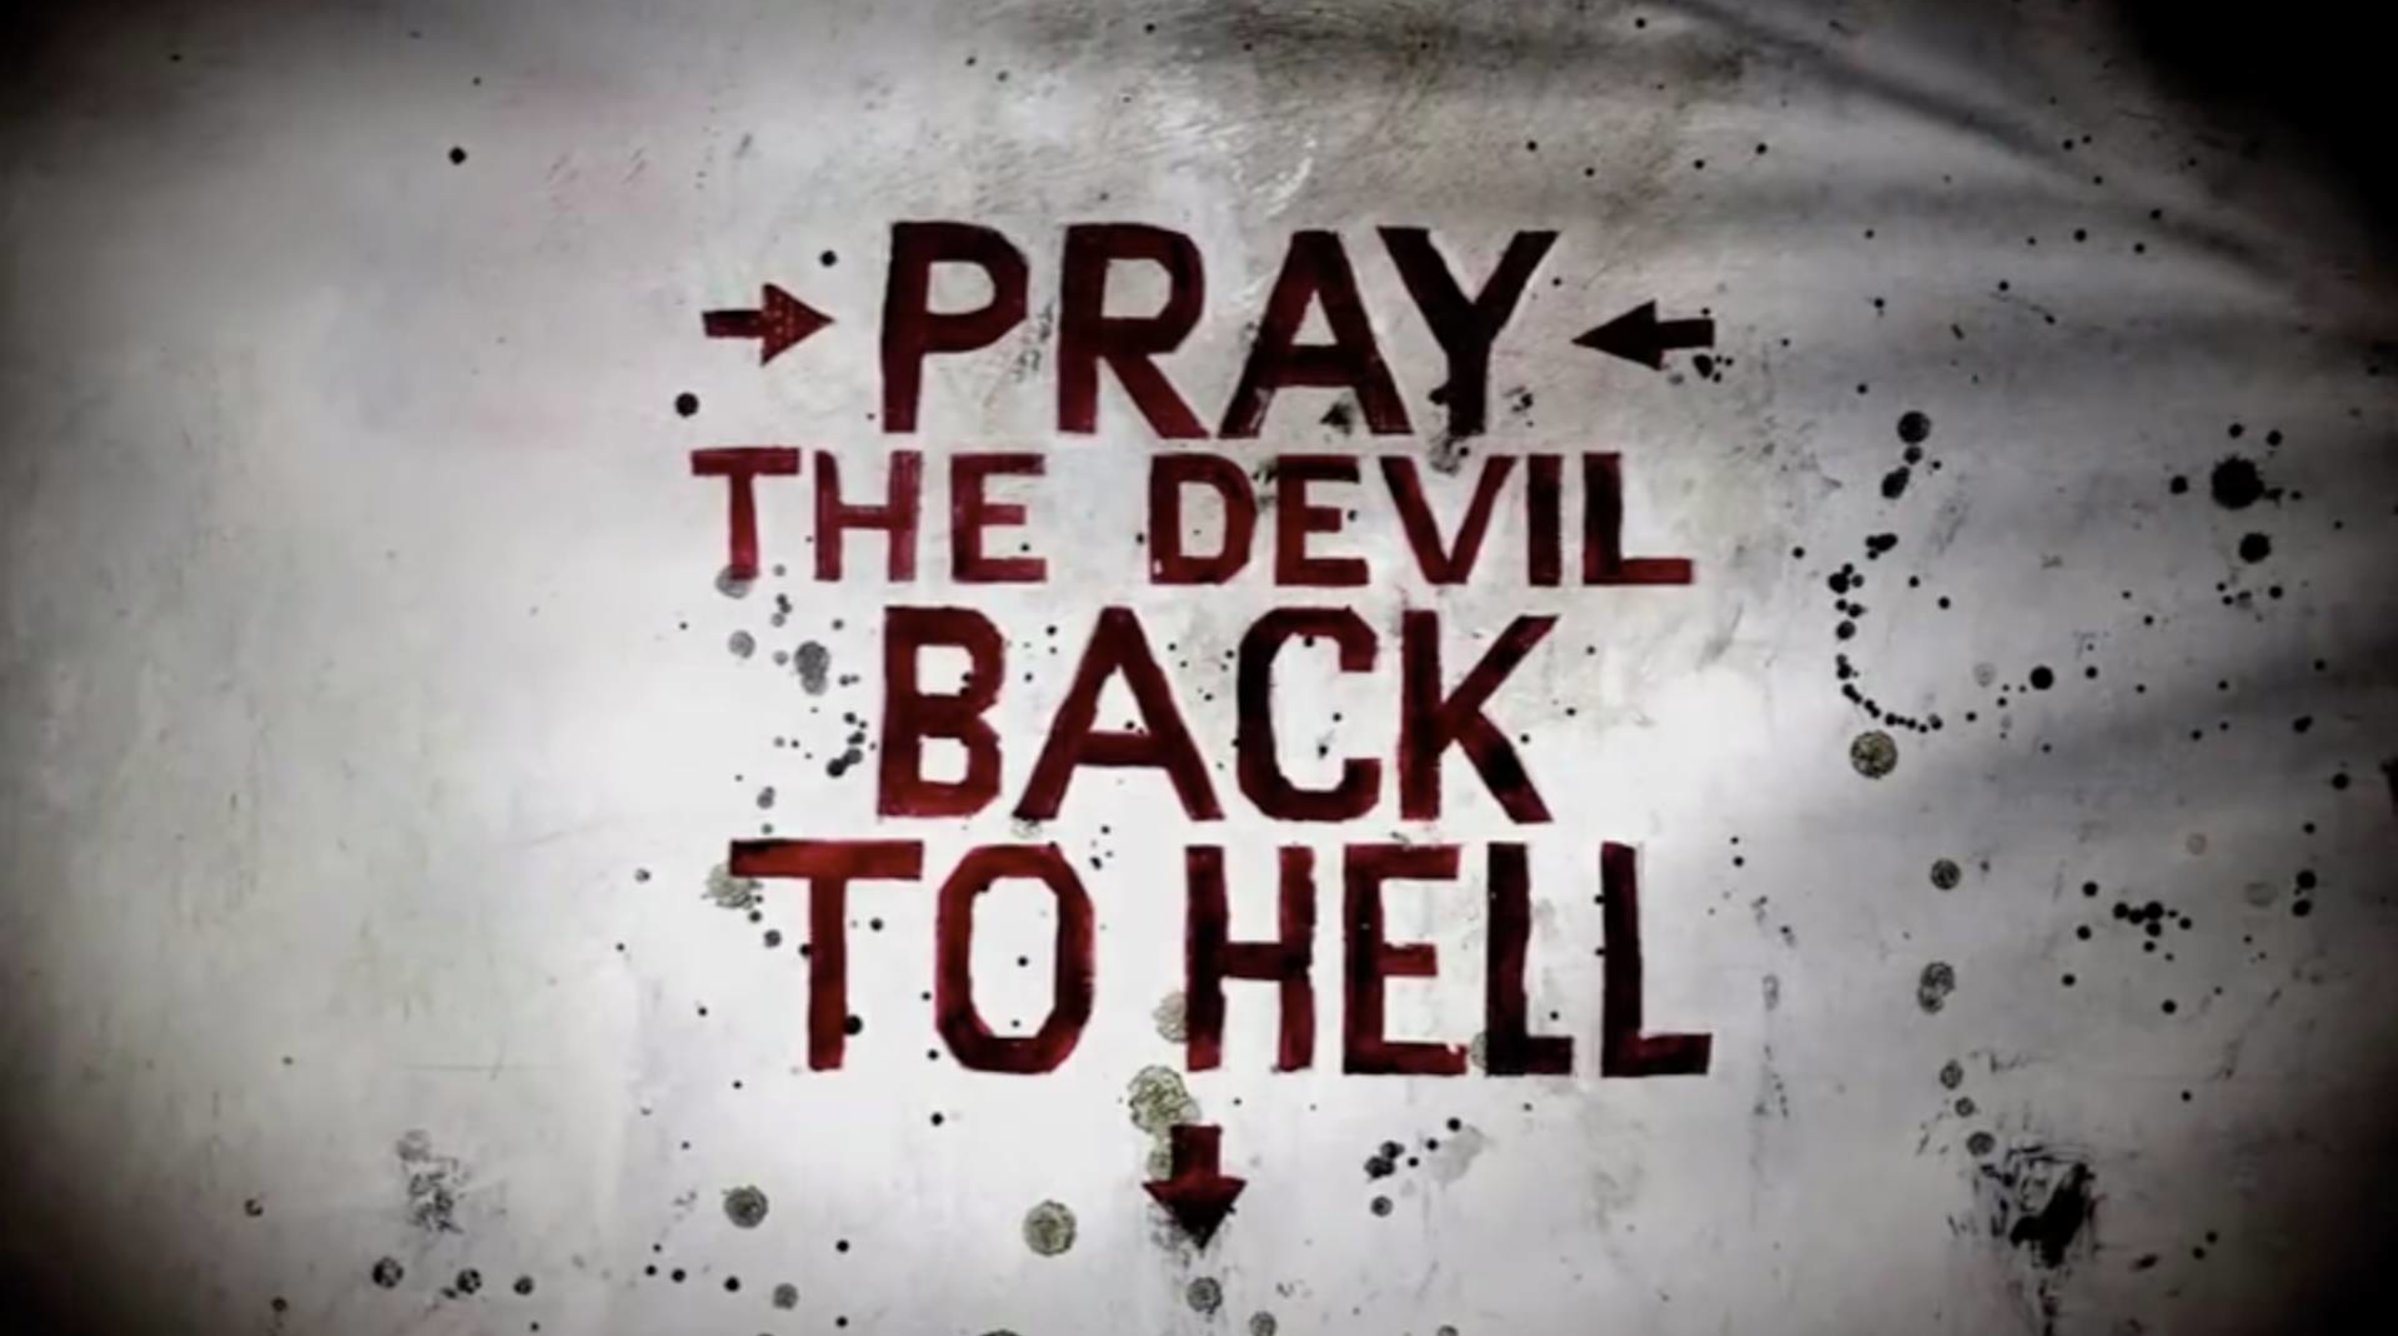 Pray the Devil Back to Hell trailer